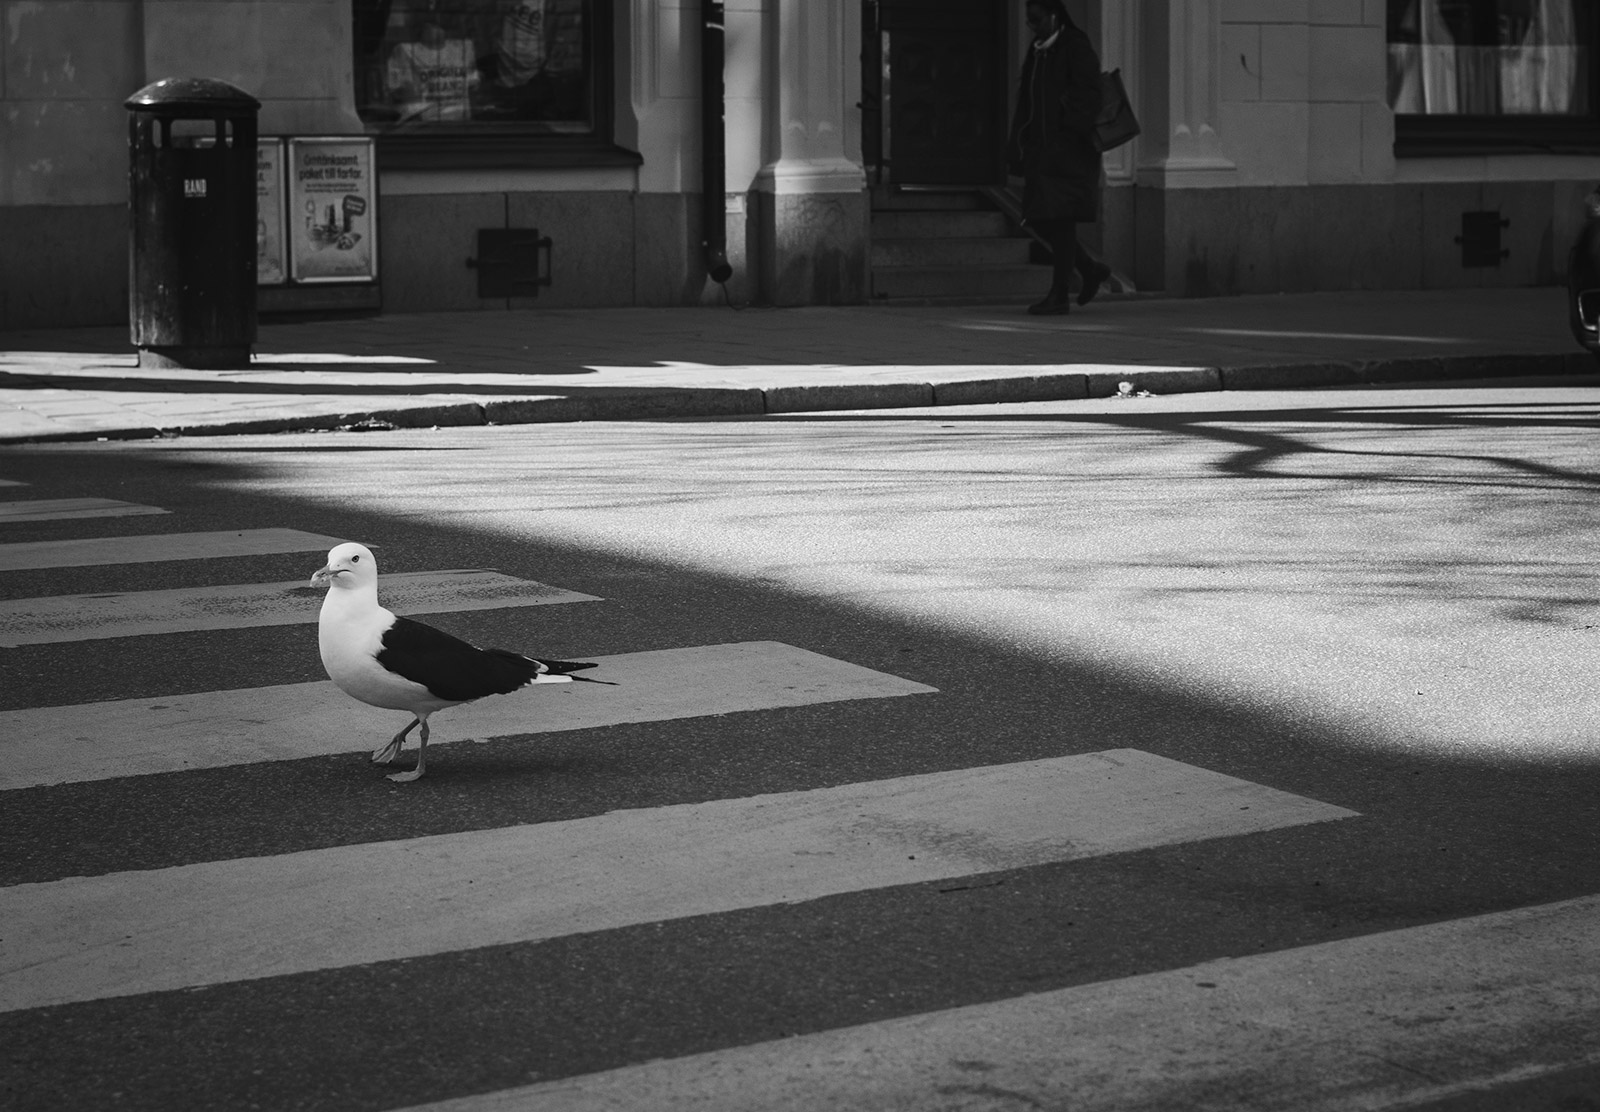 Seagull on pedestrian crossing